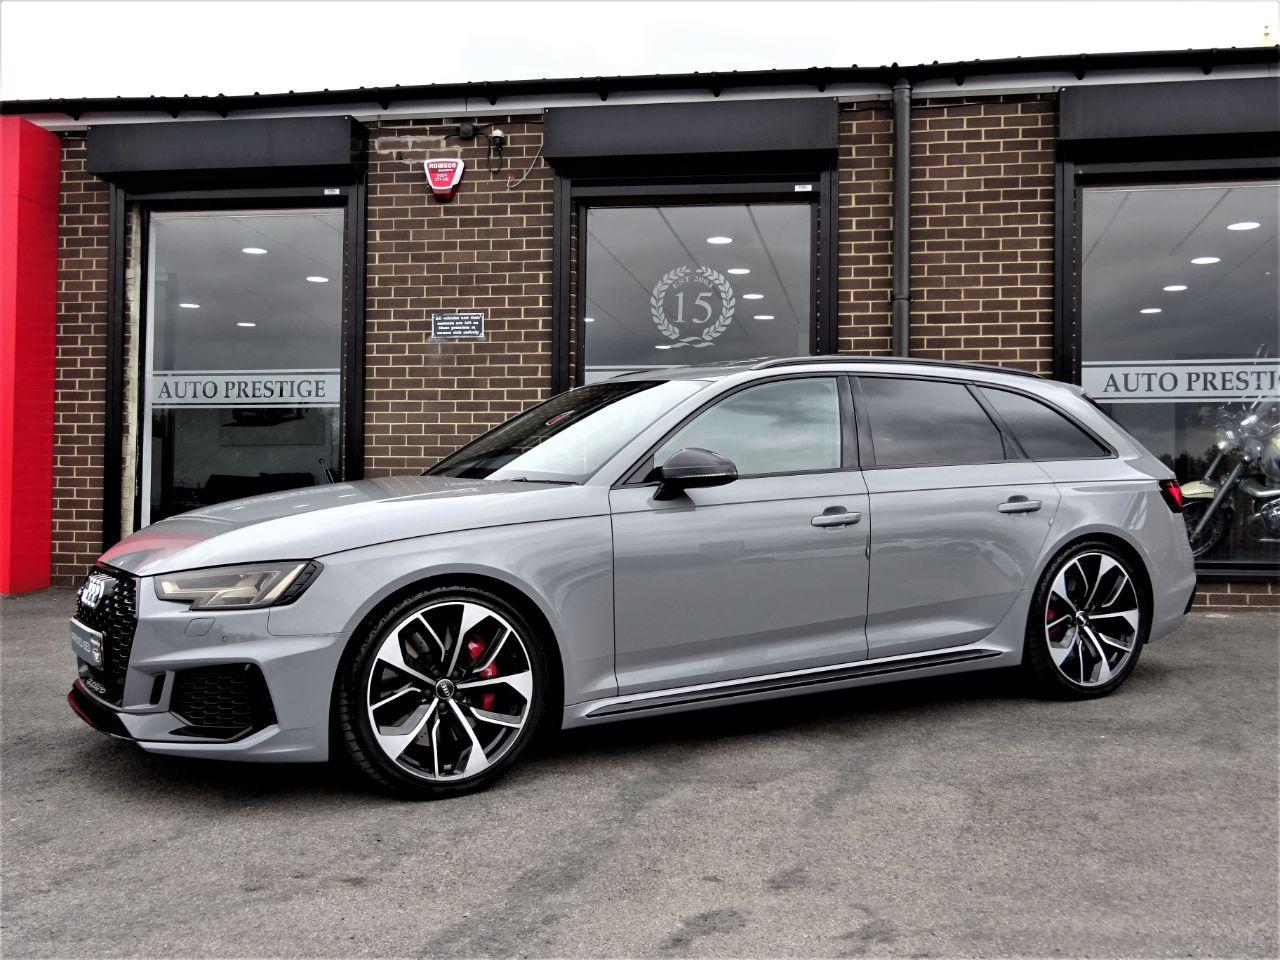 Audi RS4 2.9 TFSI Quattro 5dr Tip tronic AS NEW MASSIVE SPEC WITH NEARLY ALL OPTIONS VATQ Estate Petrol Nardo Grey at Autoprestige Bradford